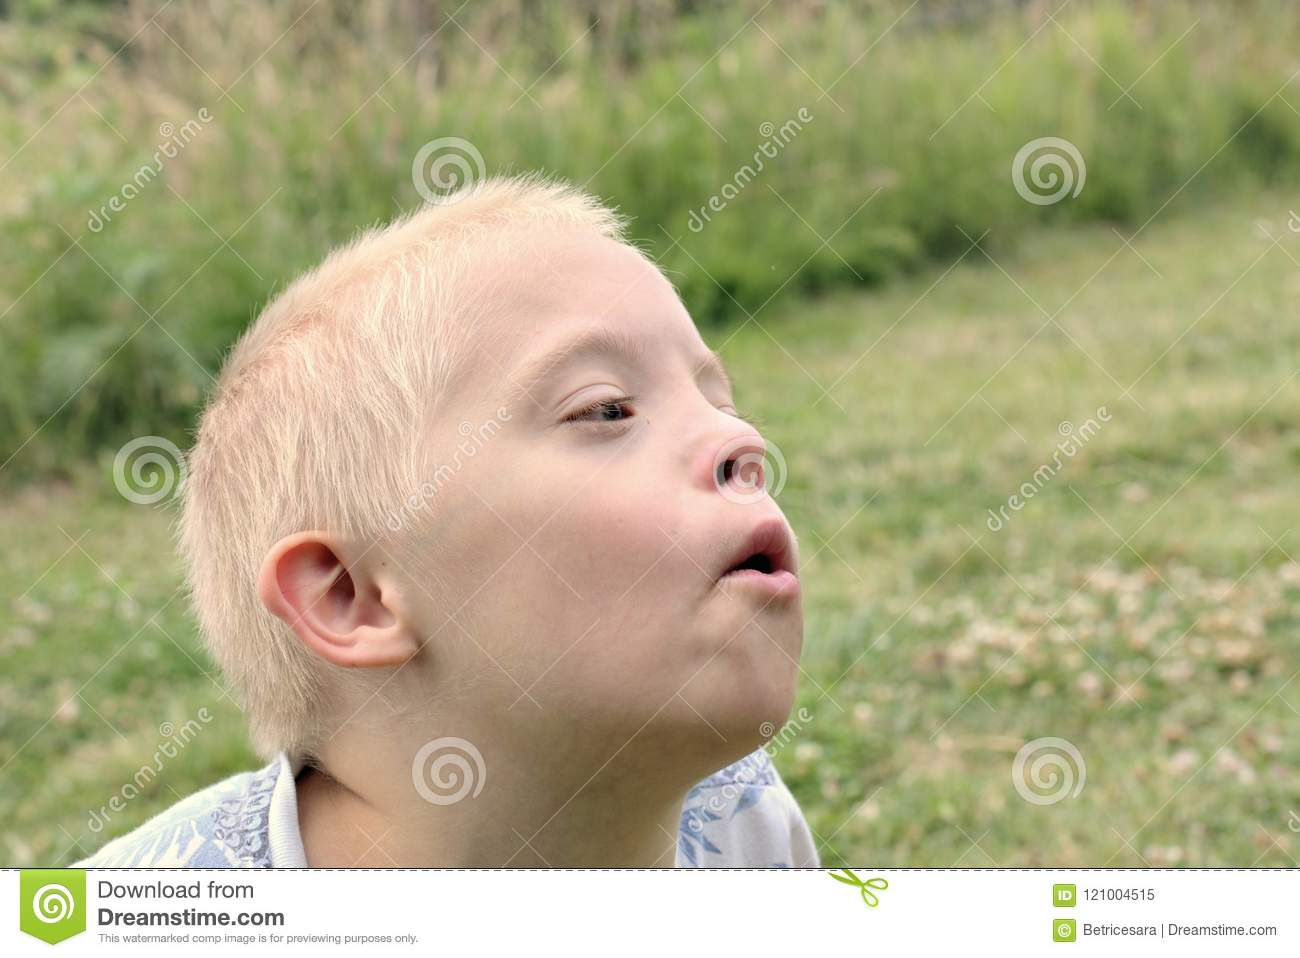 Children with Down syndrome pose for a nice photo shoot 48